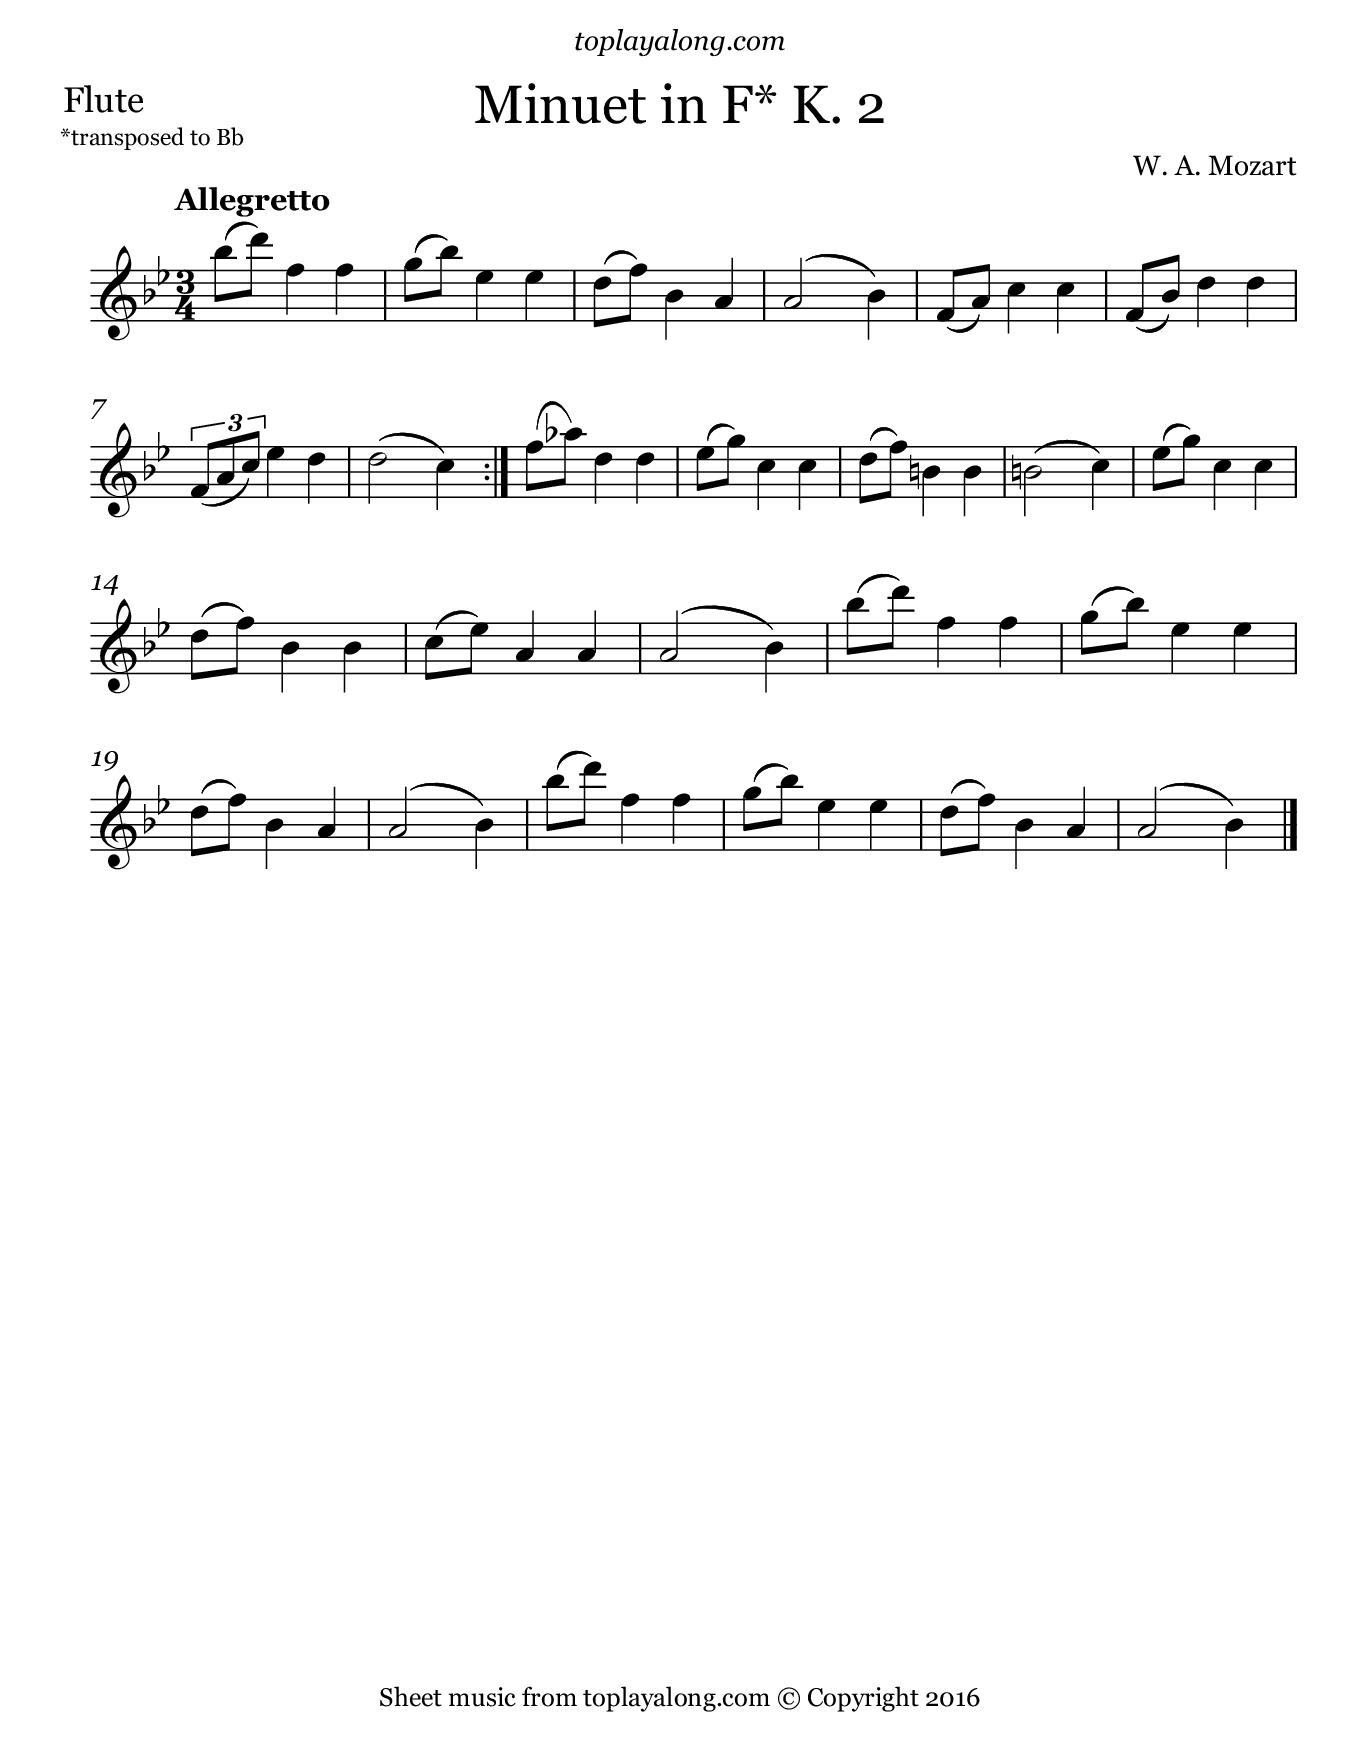 Minuet in F K. 2 by Mozart. Sheet music for Flute, page 1.